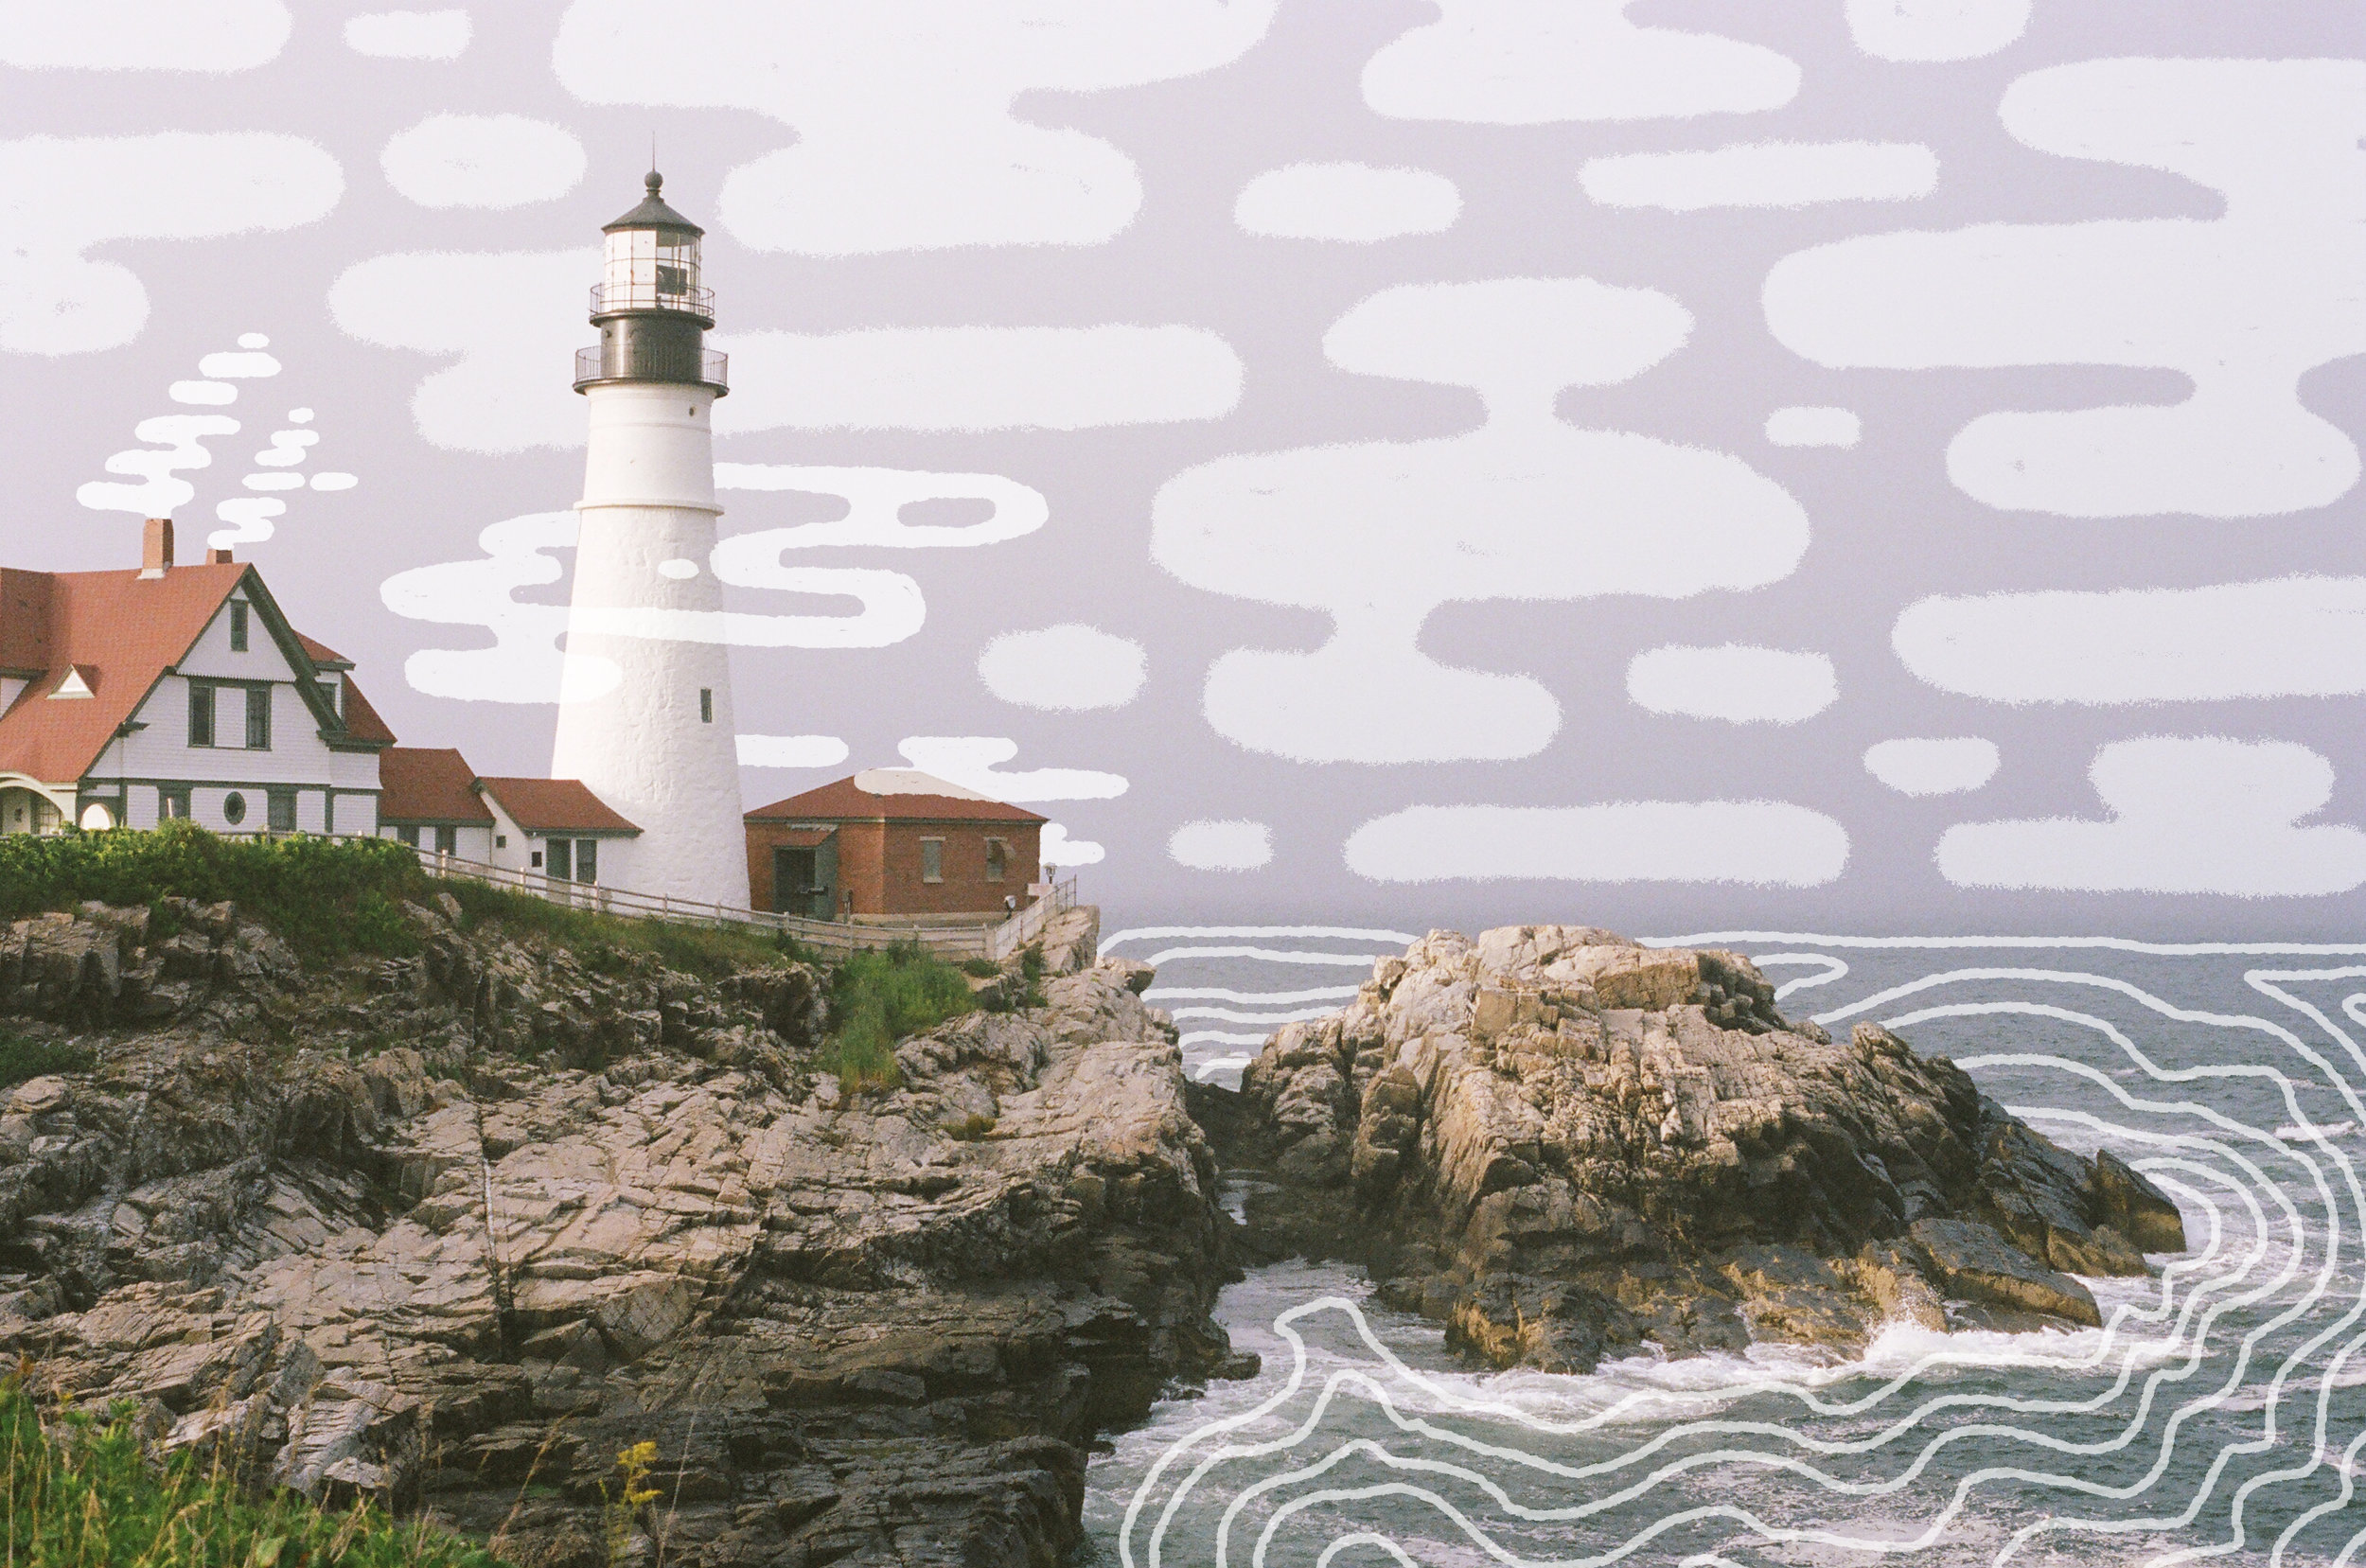 Illustration by MAK over Portland Head Lighthouse, 35mm